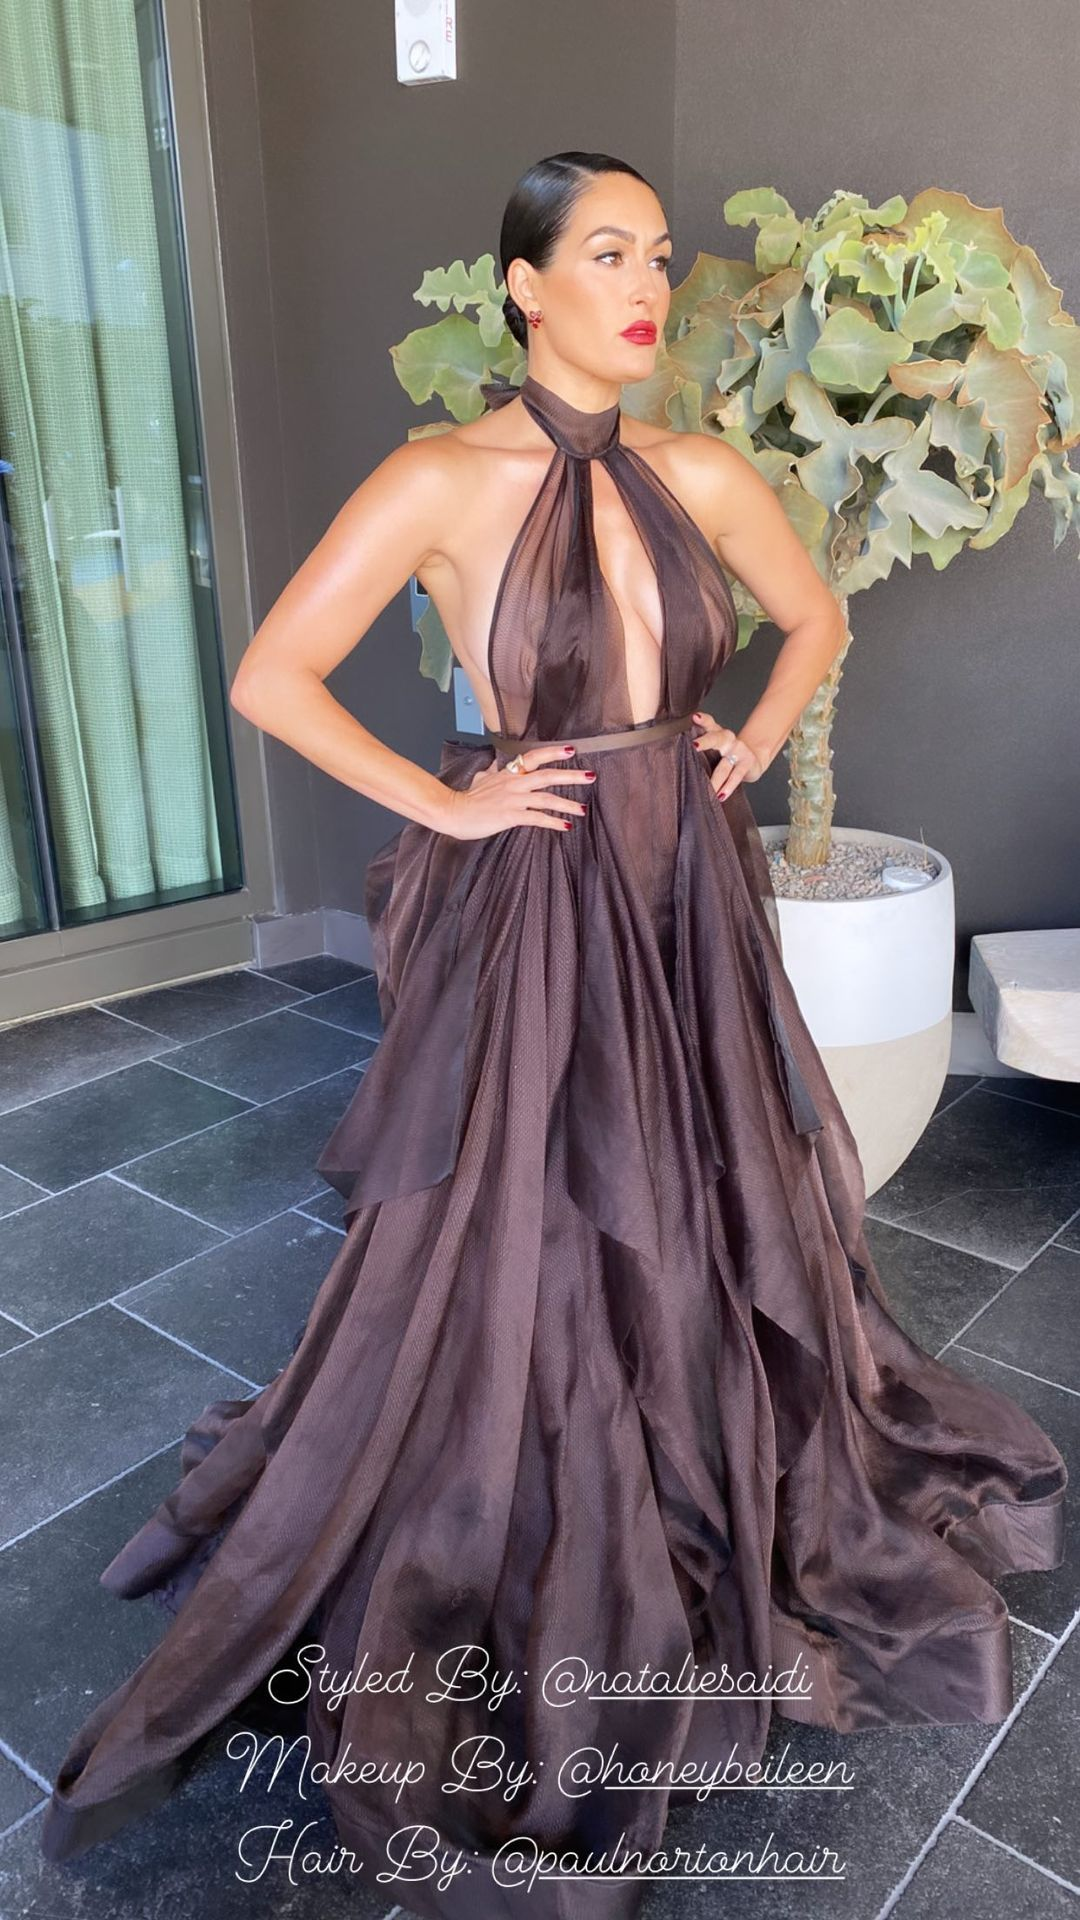 WWE Star Nikki Bella Shows Off Her Gown From Emmy 2021 Appearance 2